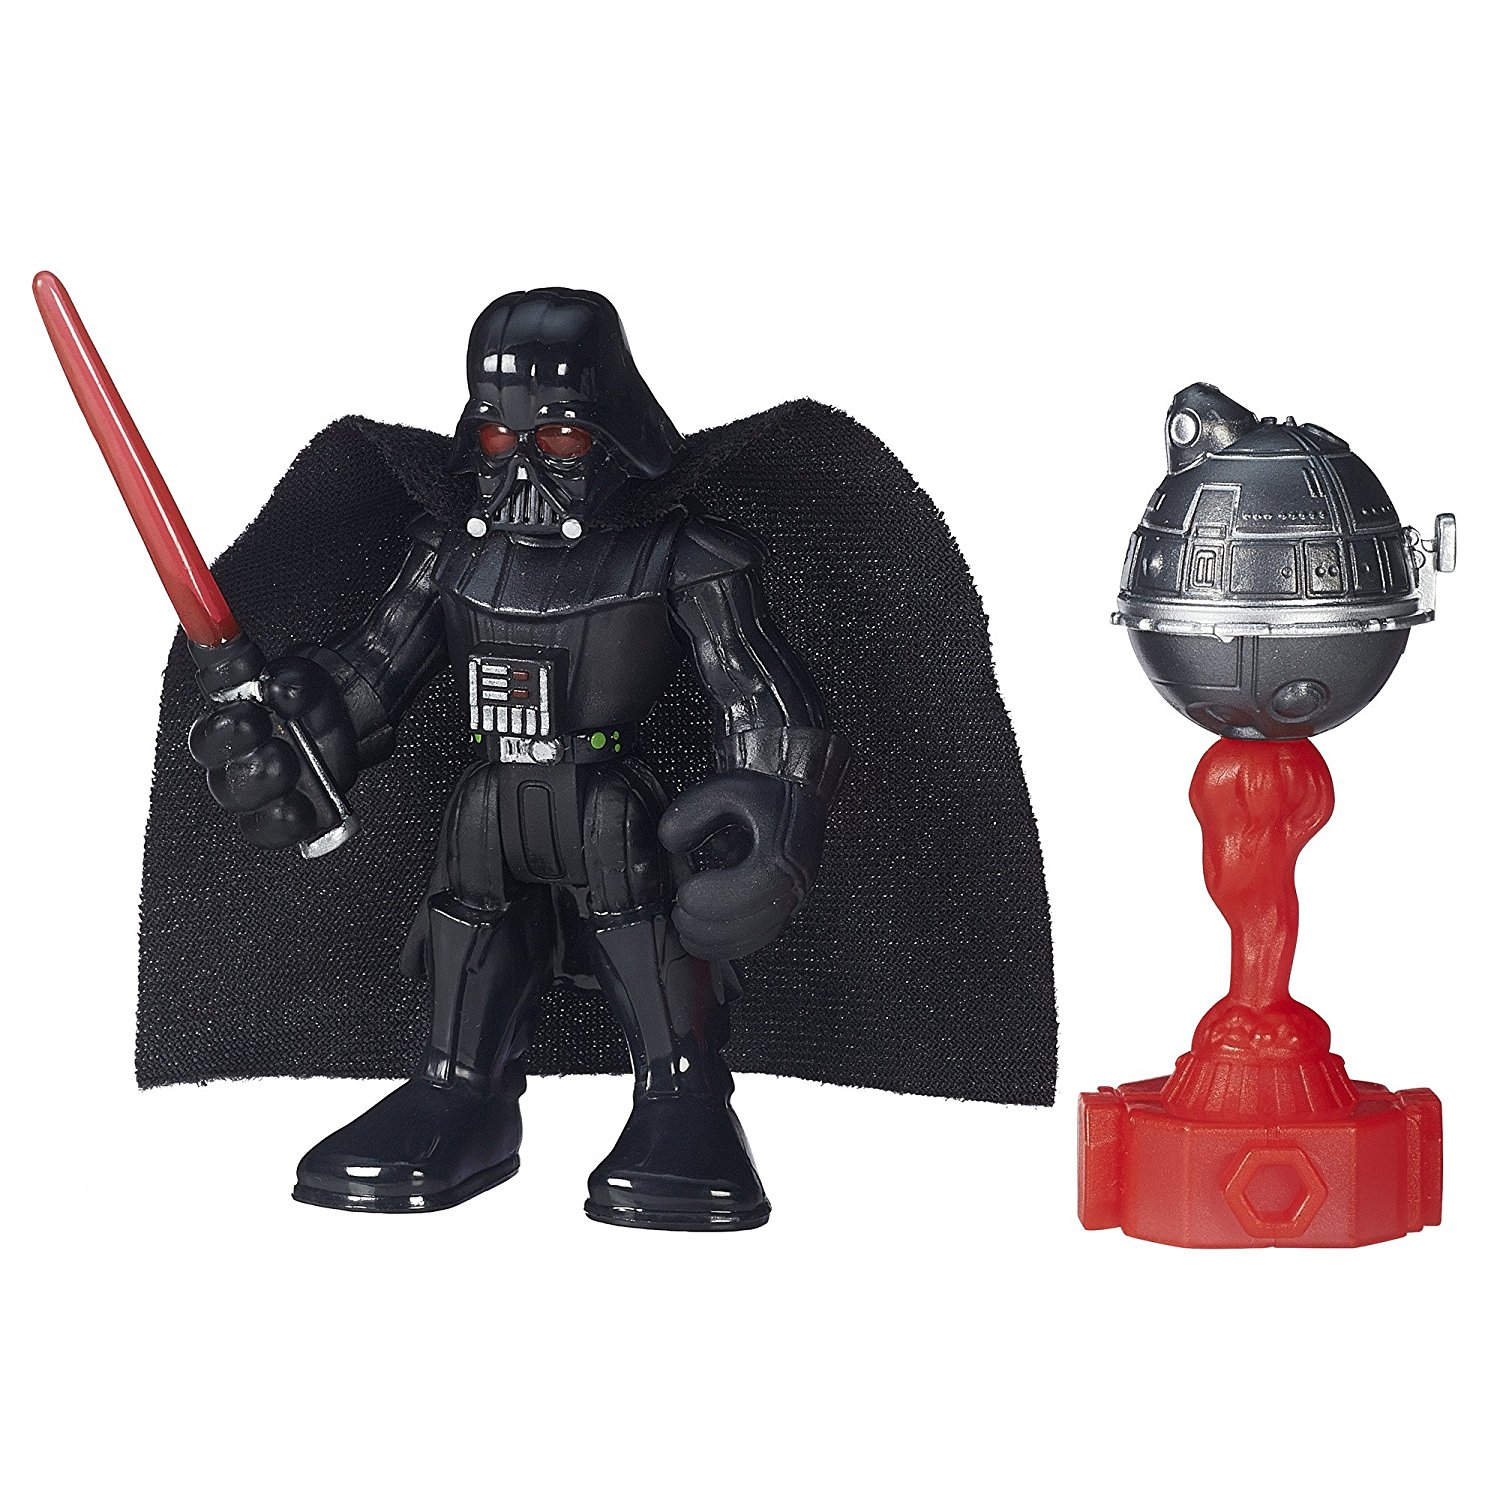 Heroes Galactic Heroes Star Wars Darth Vader, Sized right for smaller hands By Playskool by